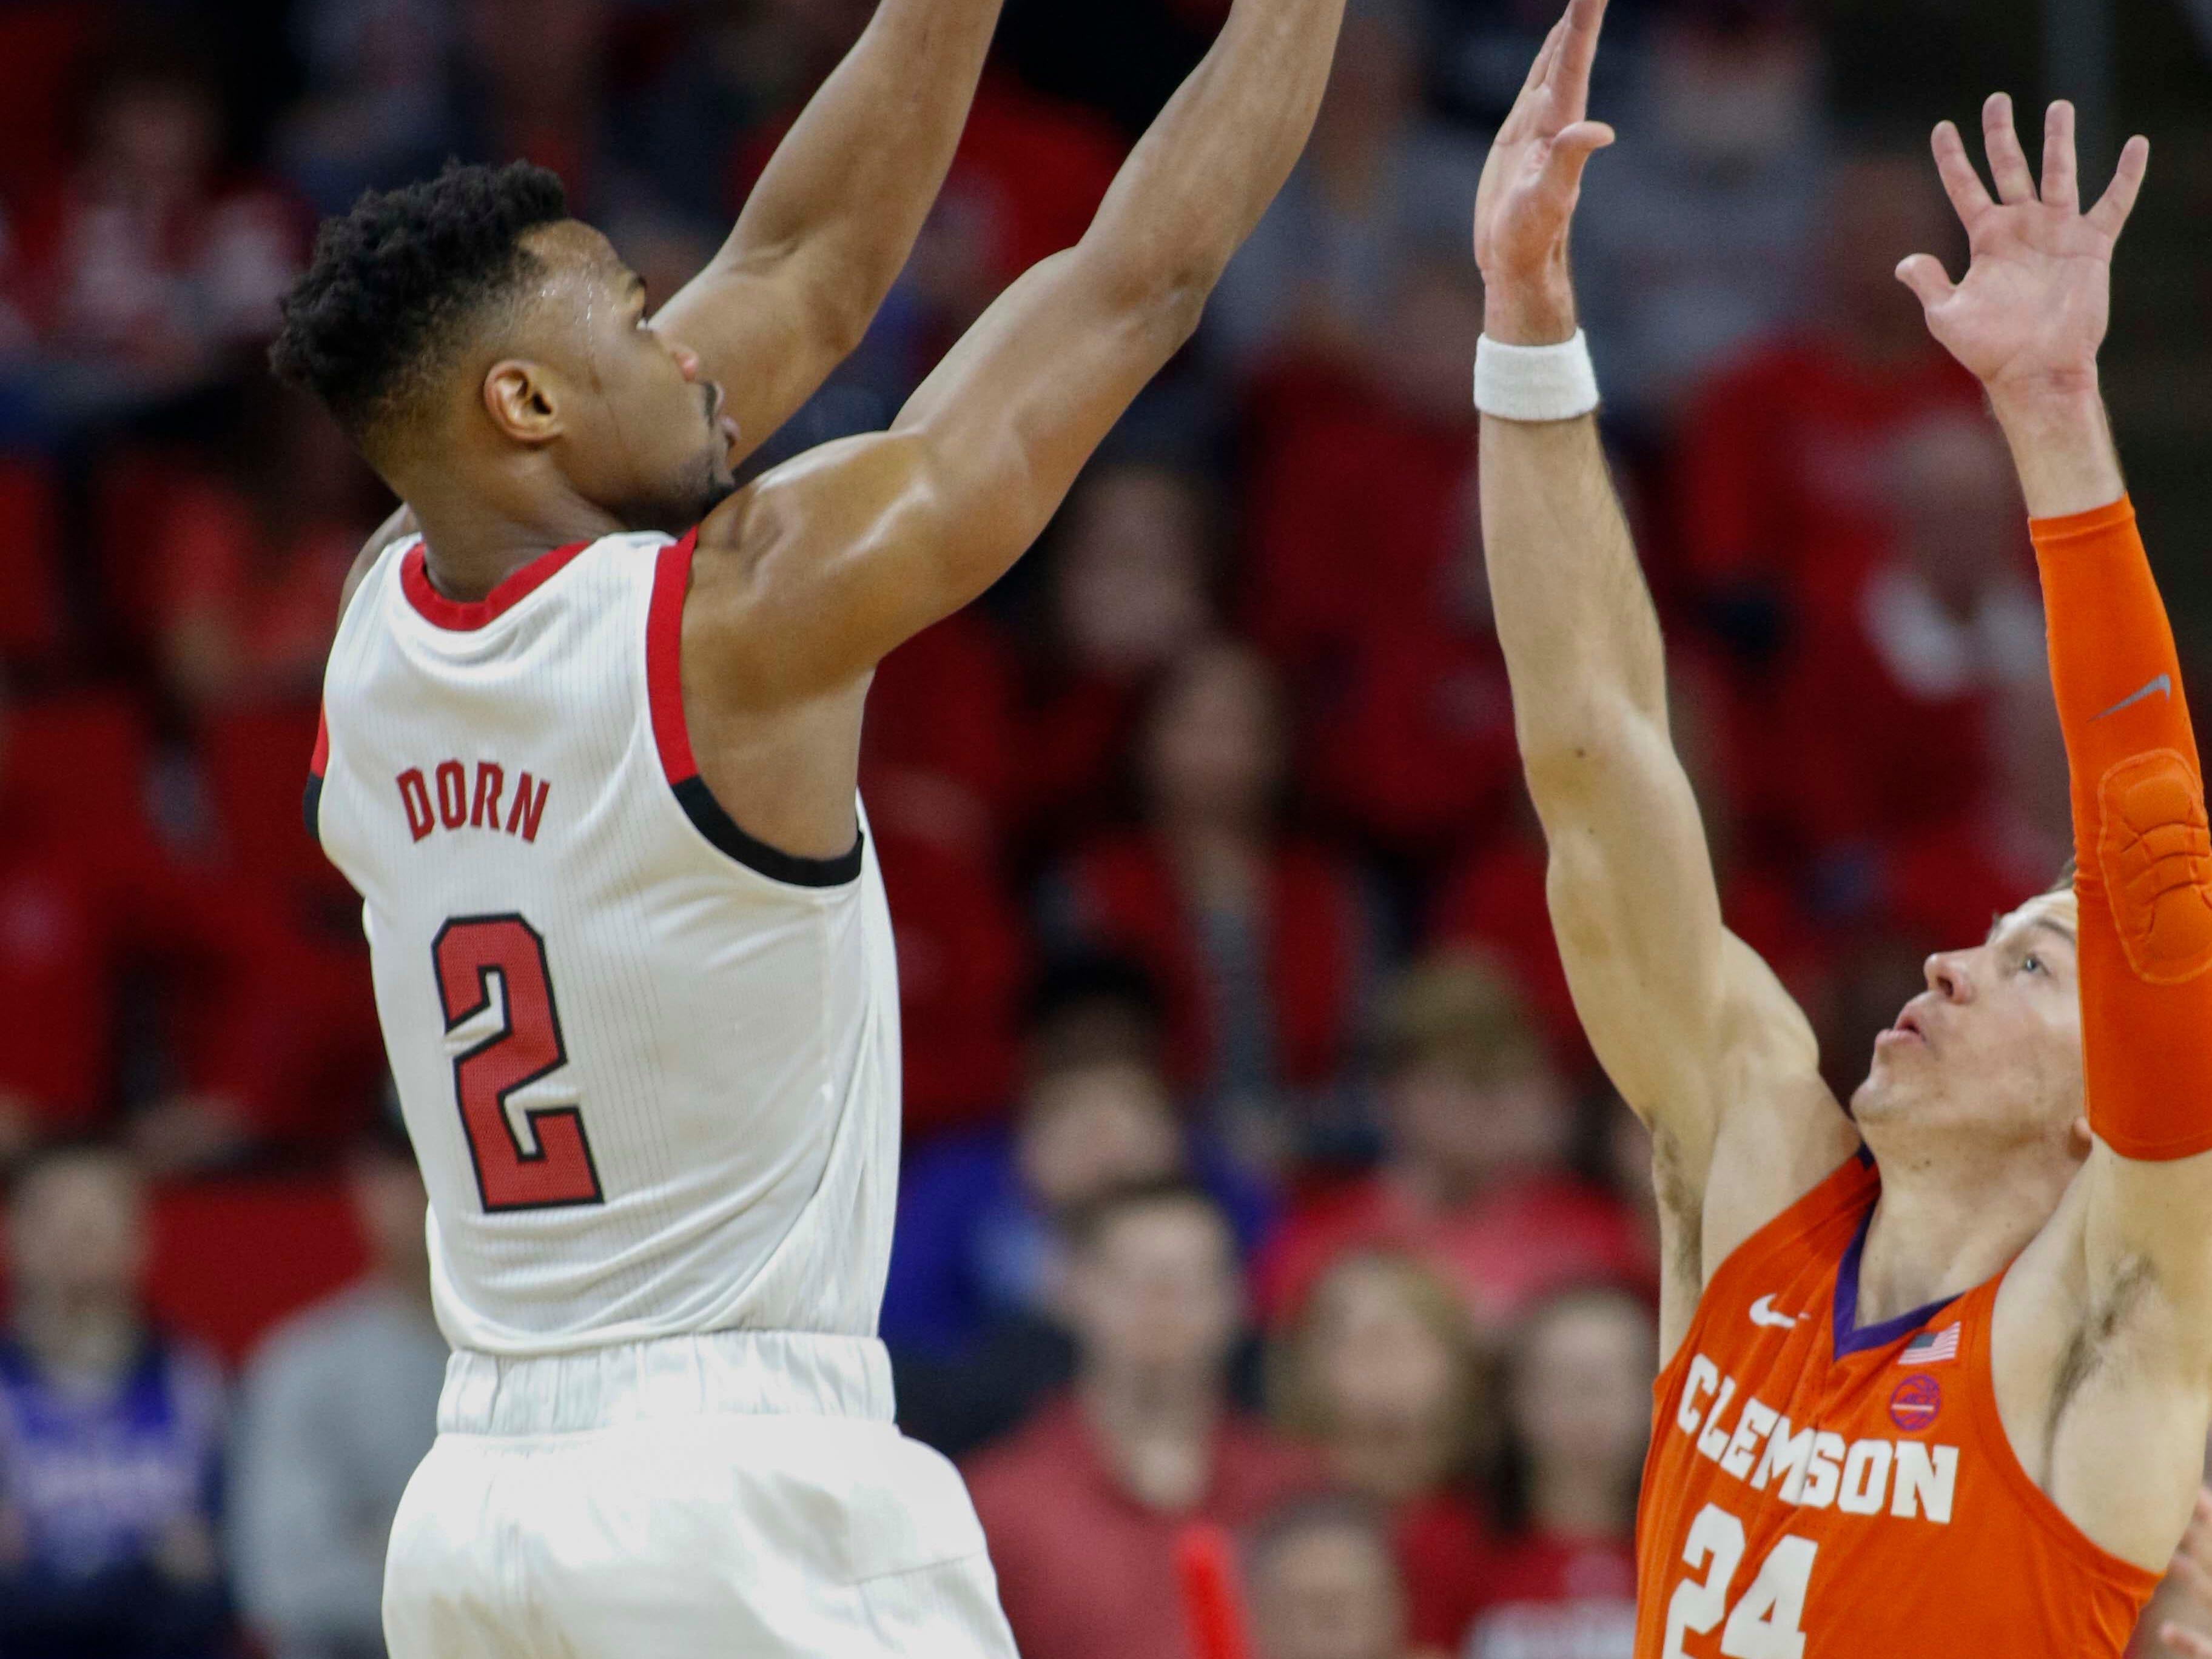 Jan 26, 2019; Raleigh, NC, USA; North Carolina State Wolfpack guard Torin Dorn (2) shoots over Clemson Tigers forward David Skara (24) in the second half at PNC Arena. North Carolina State Wolfpack won 69-67. Mandatory Credit: Nell Redmond-USA TODAY Sports